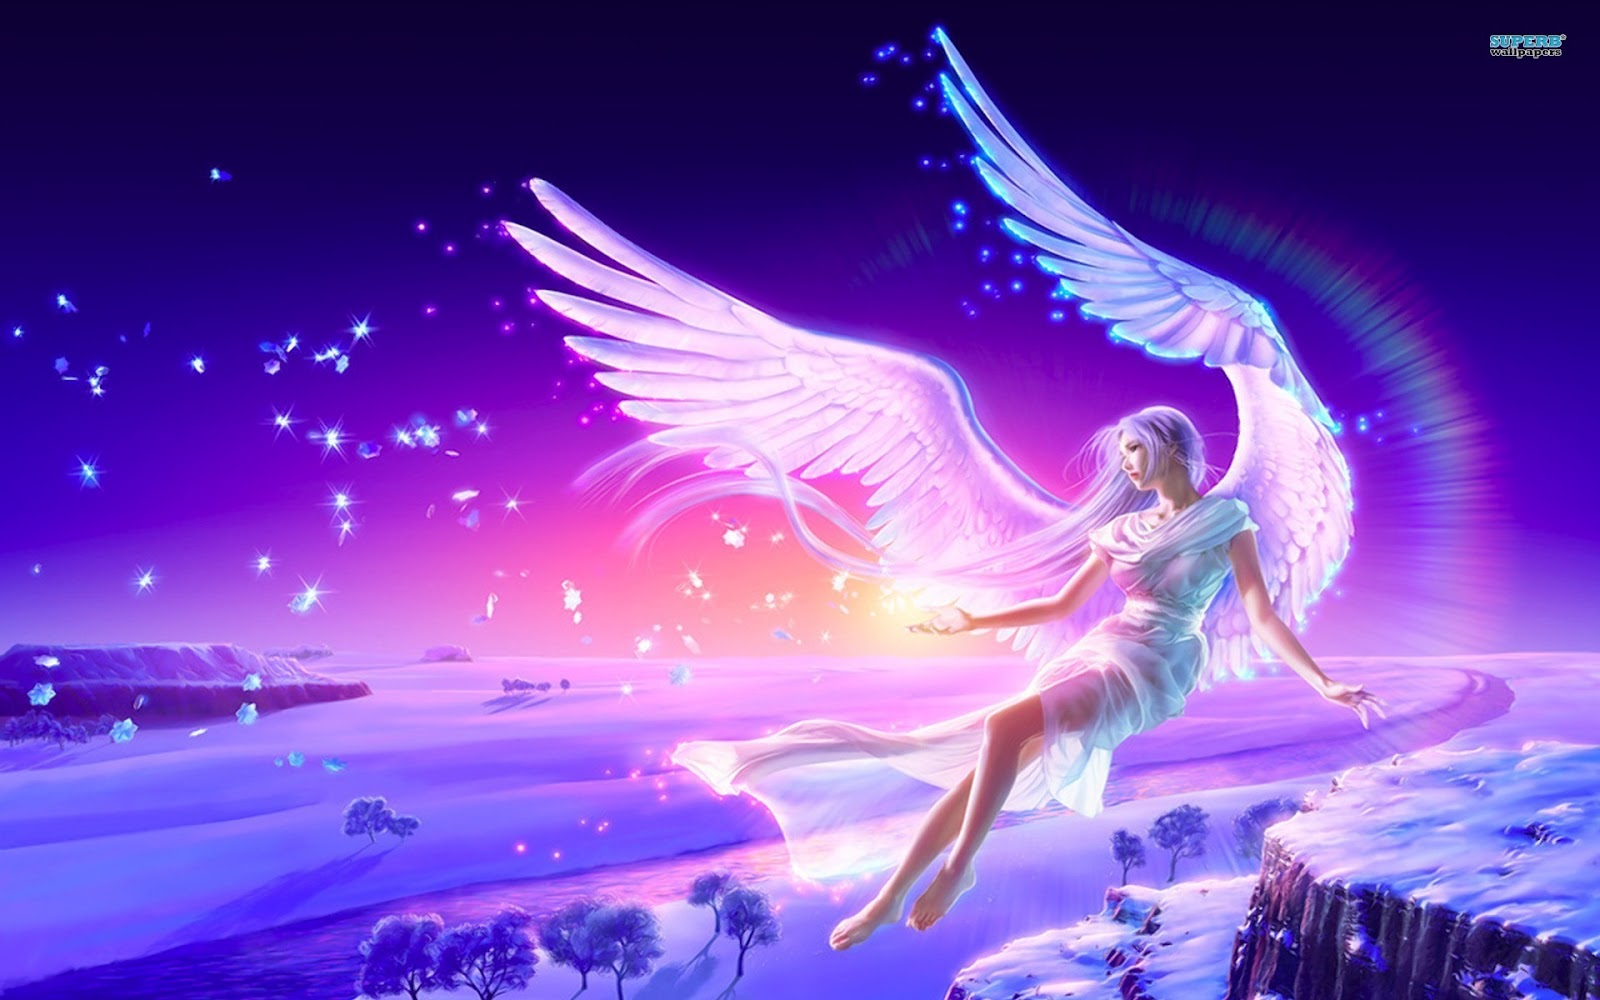 turokmu blogs: fantasy wallpapers girls dark 3d background angel